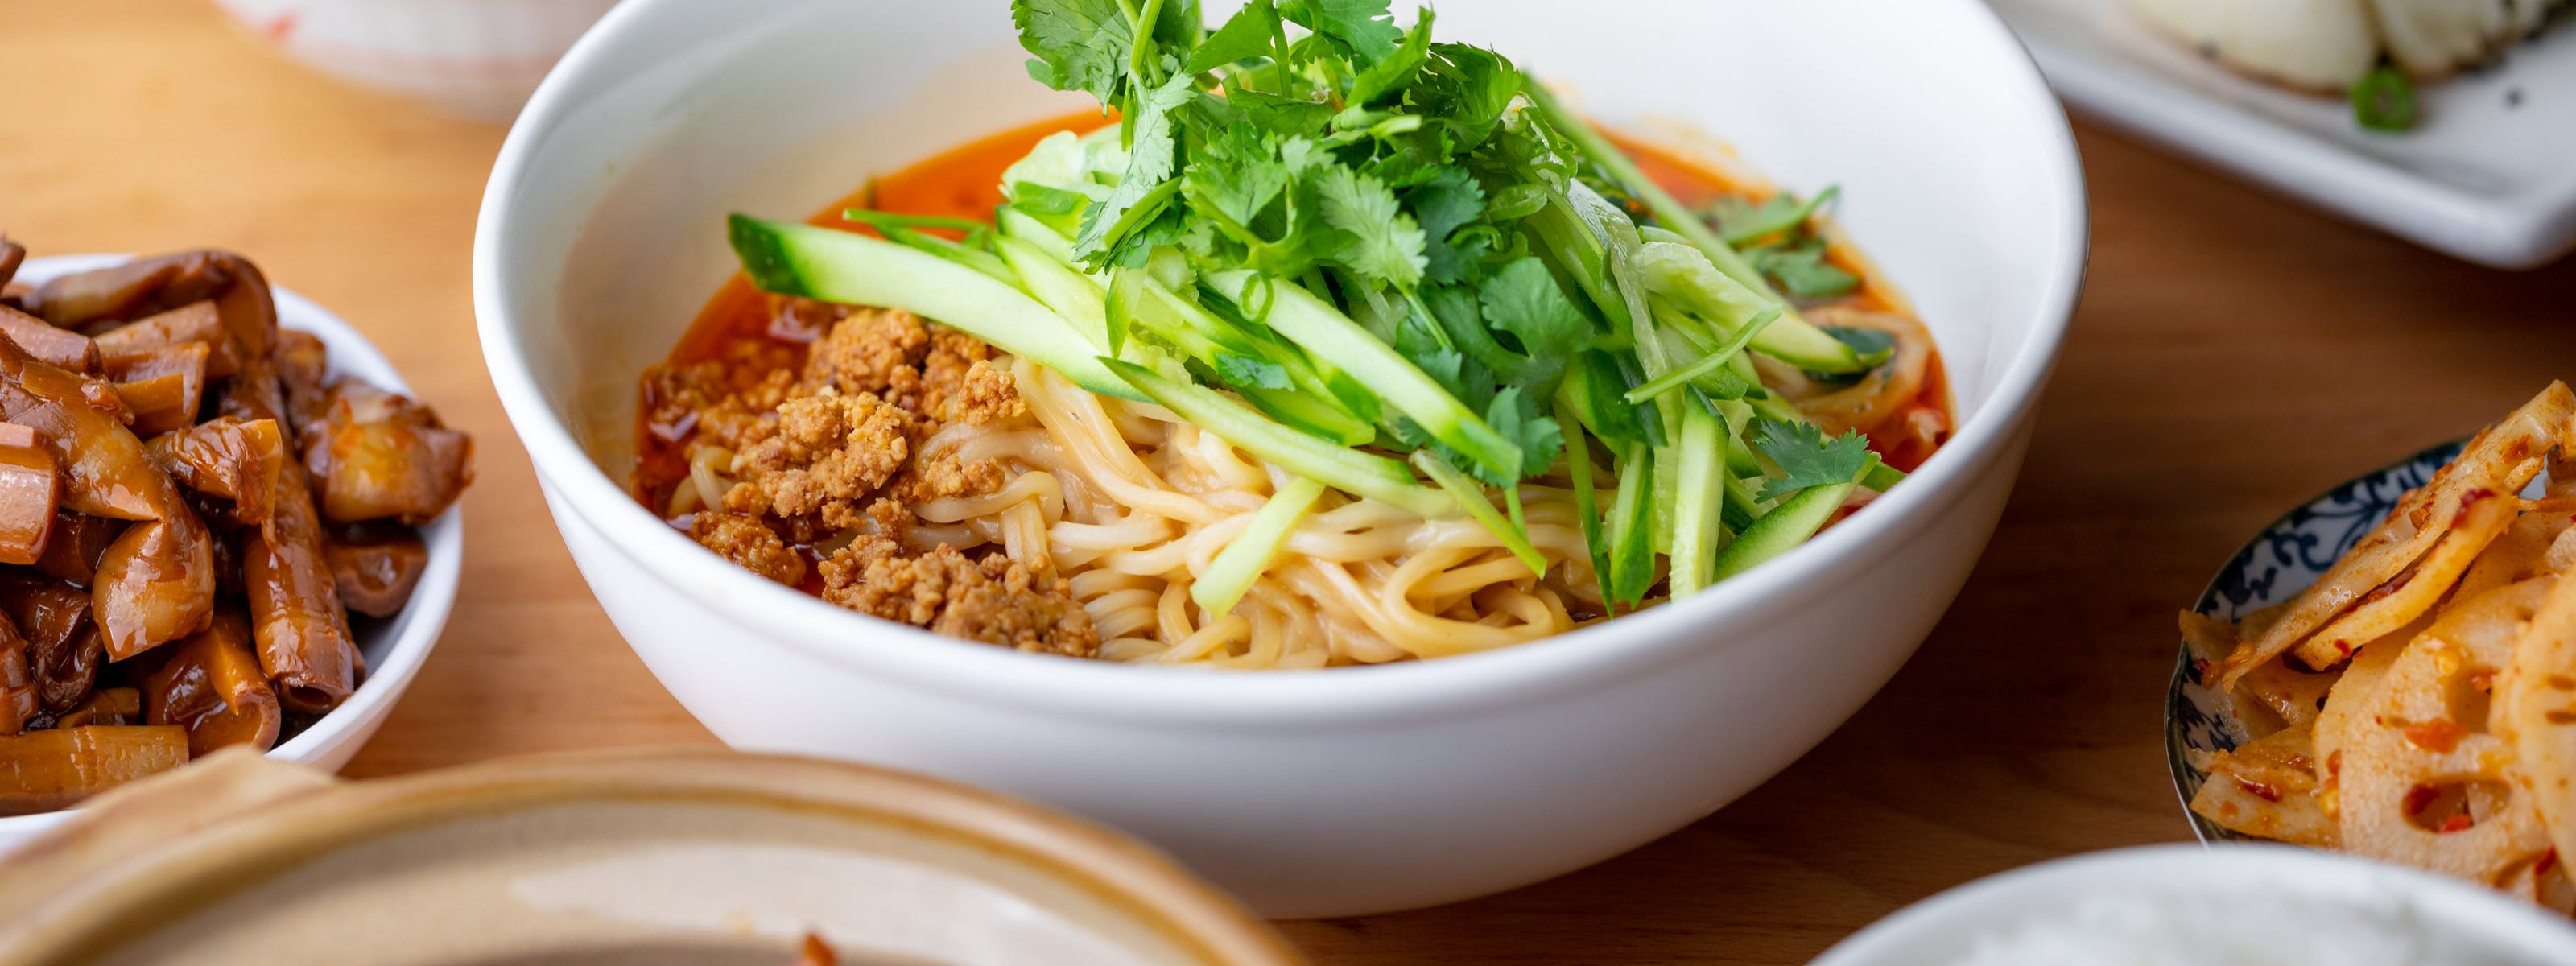 The Best Chinese Restaurants In Los Angeles - Los Angeles - The Infatuation